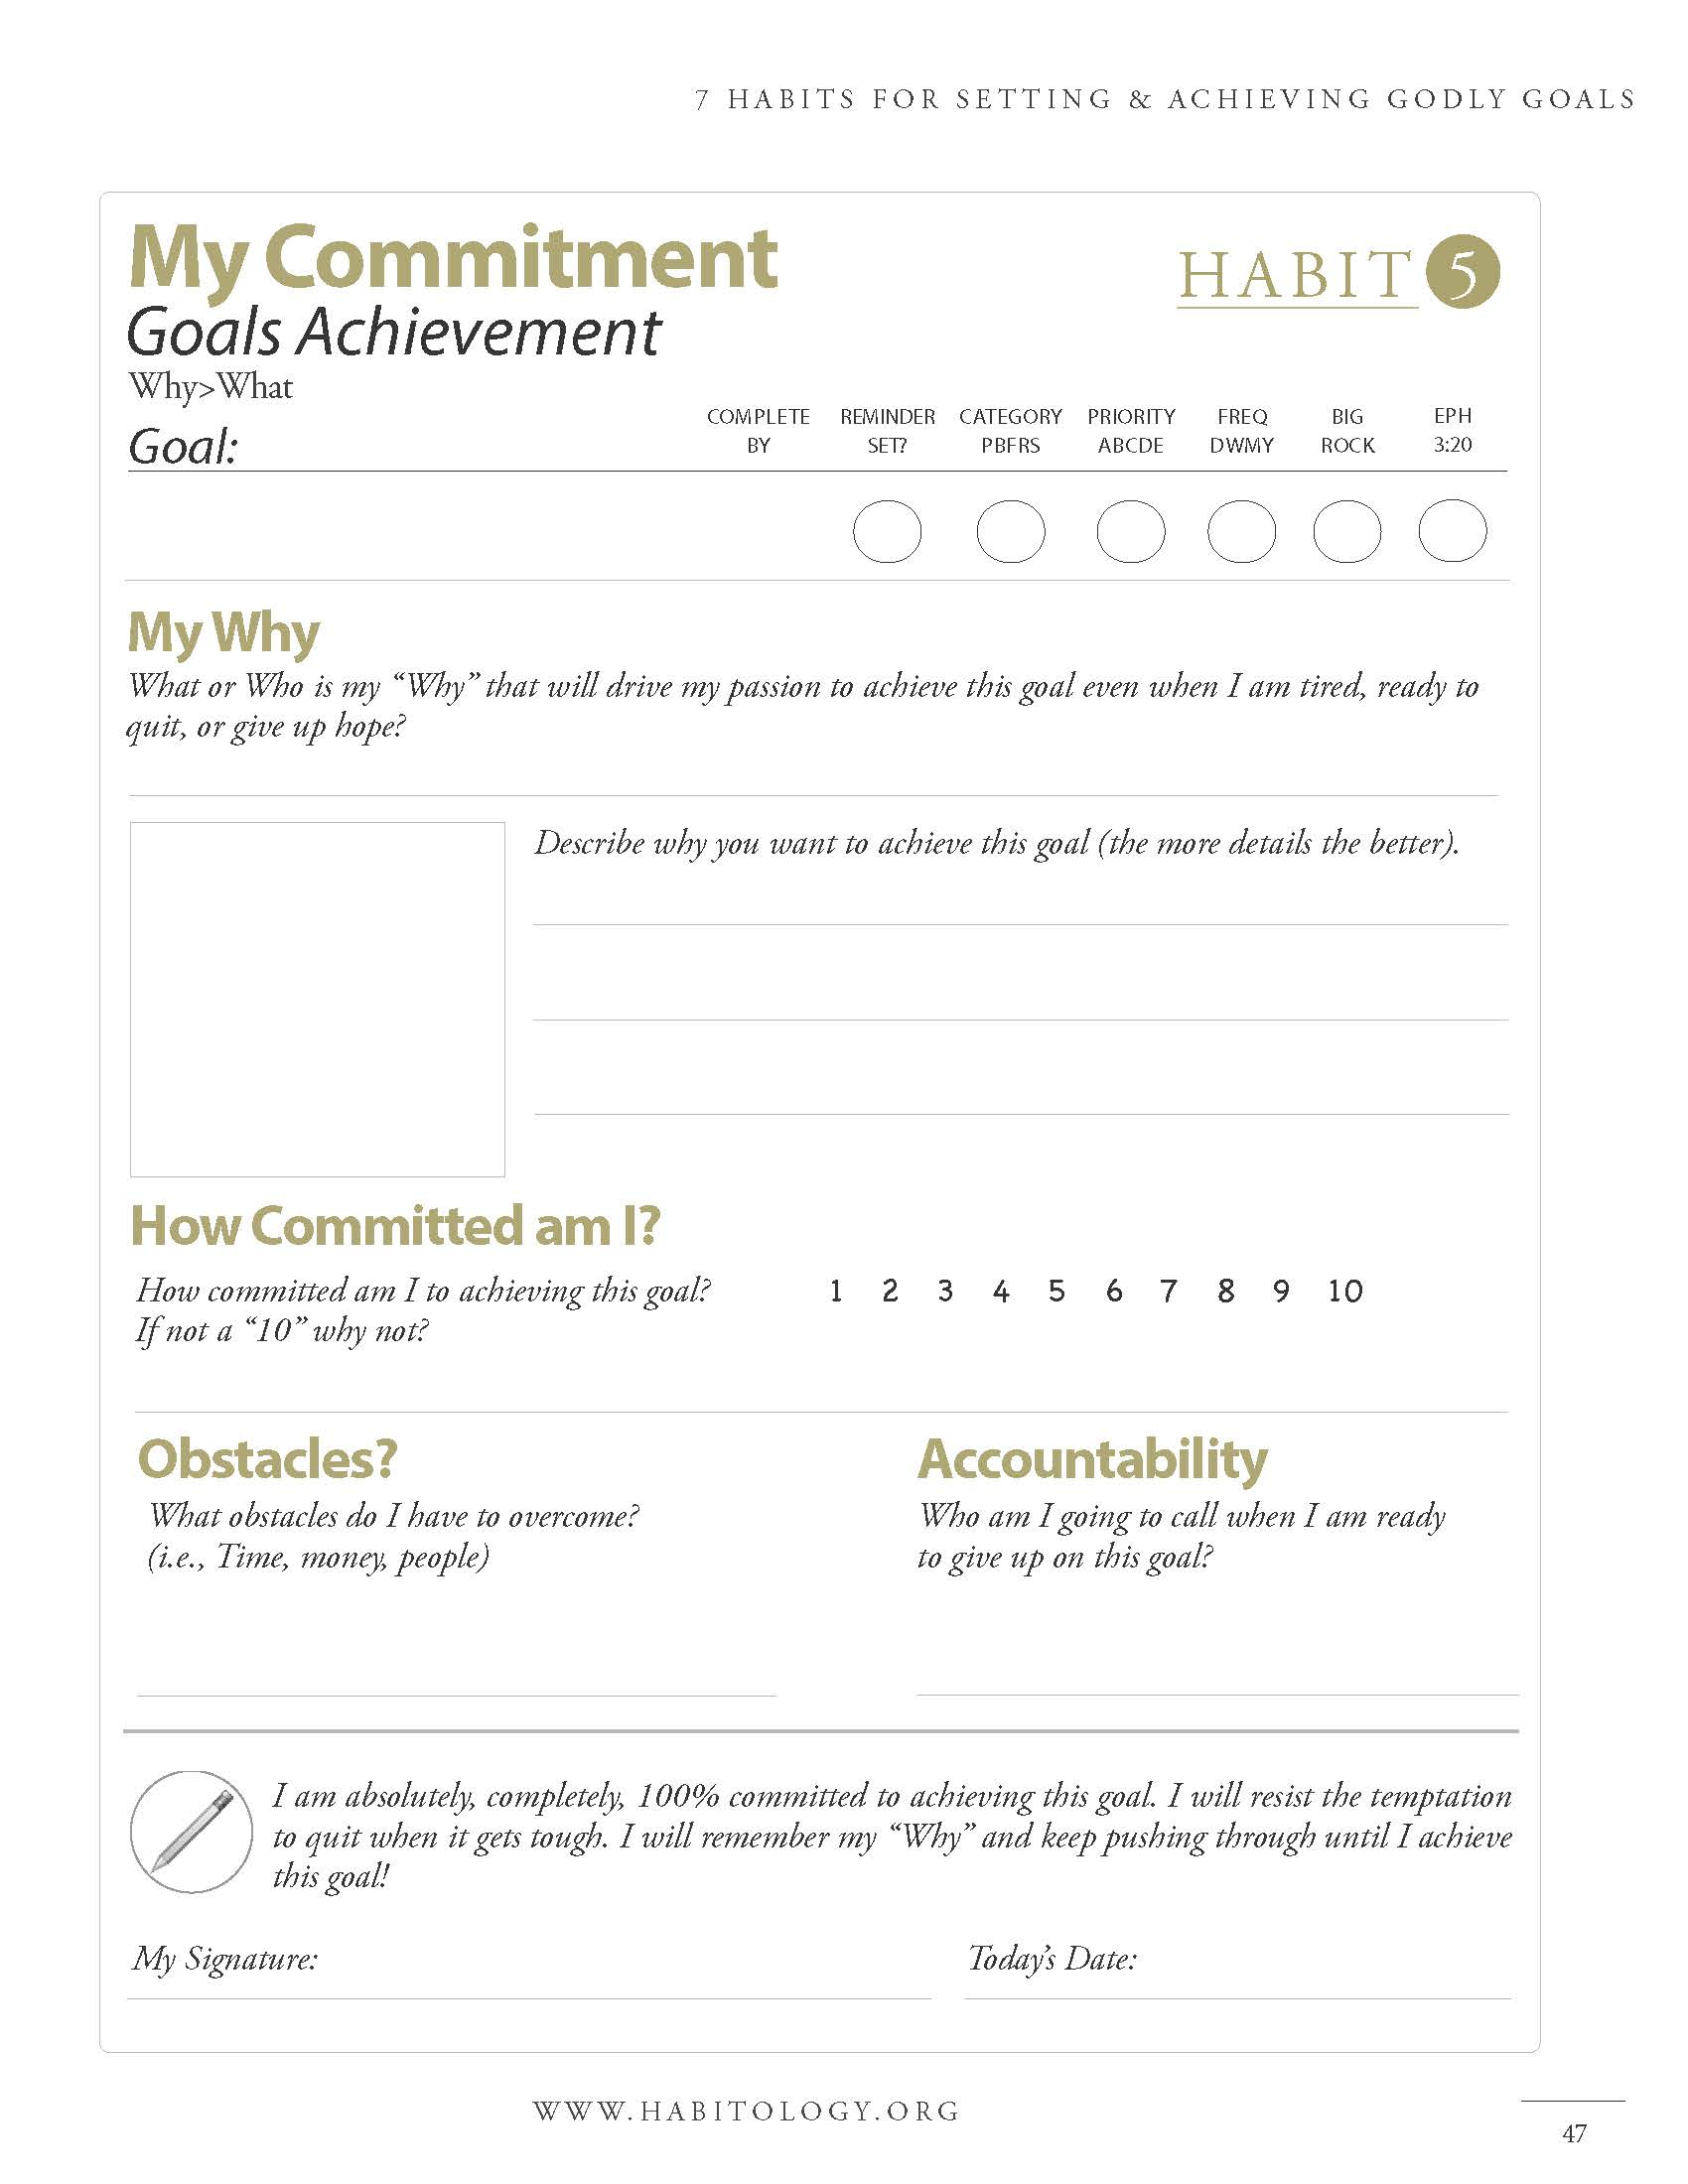 Habitology 7 Habits for Setting and Achieving Godly Goals, V7, 06-27-17 Page 47